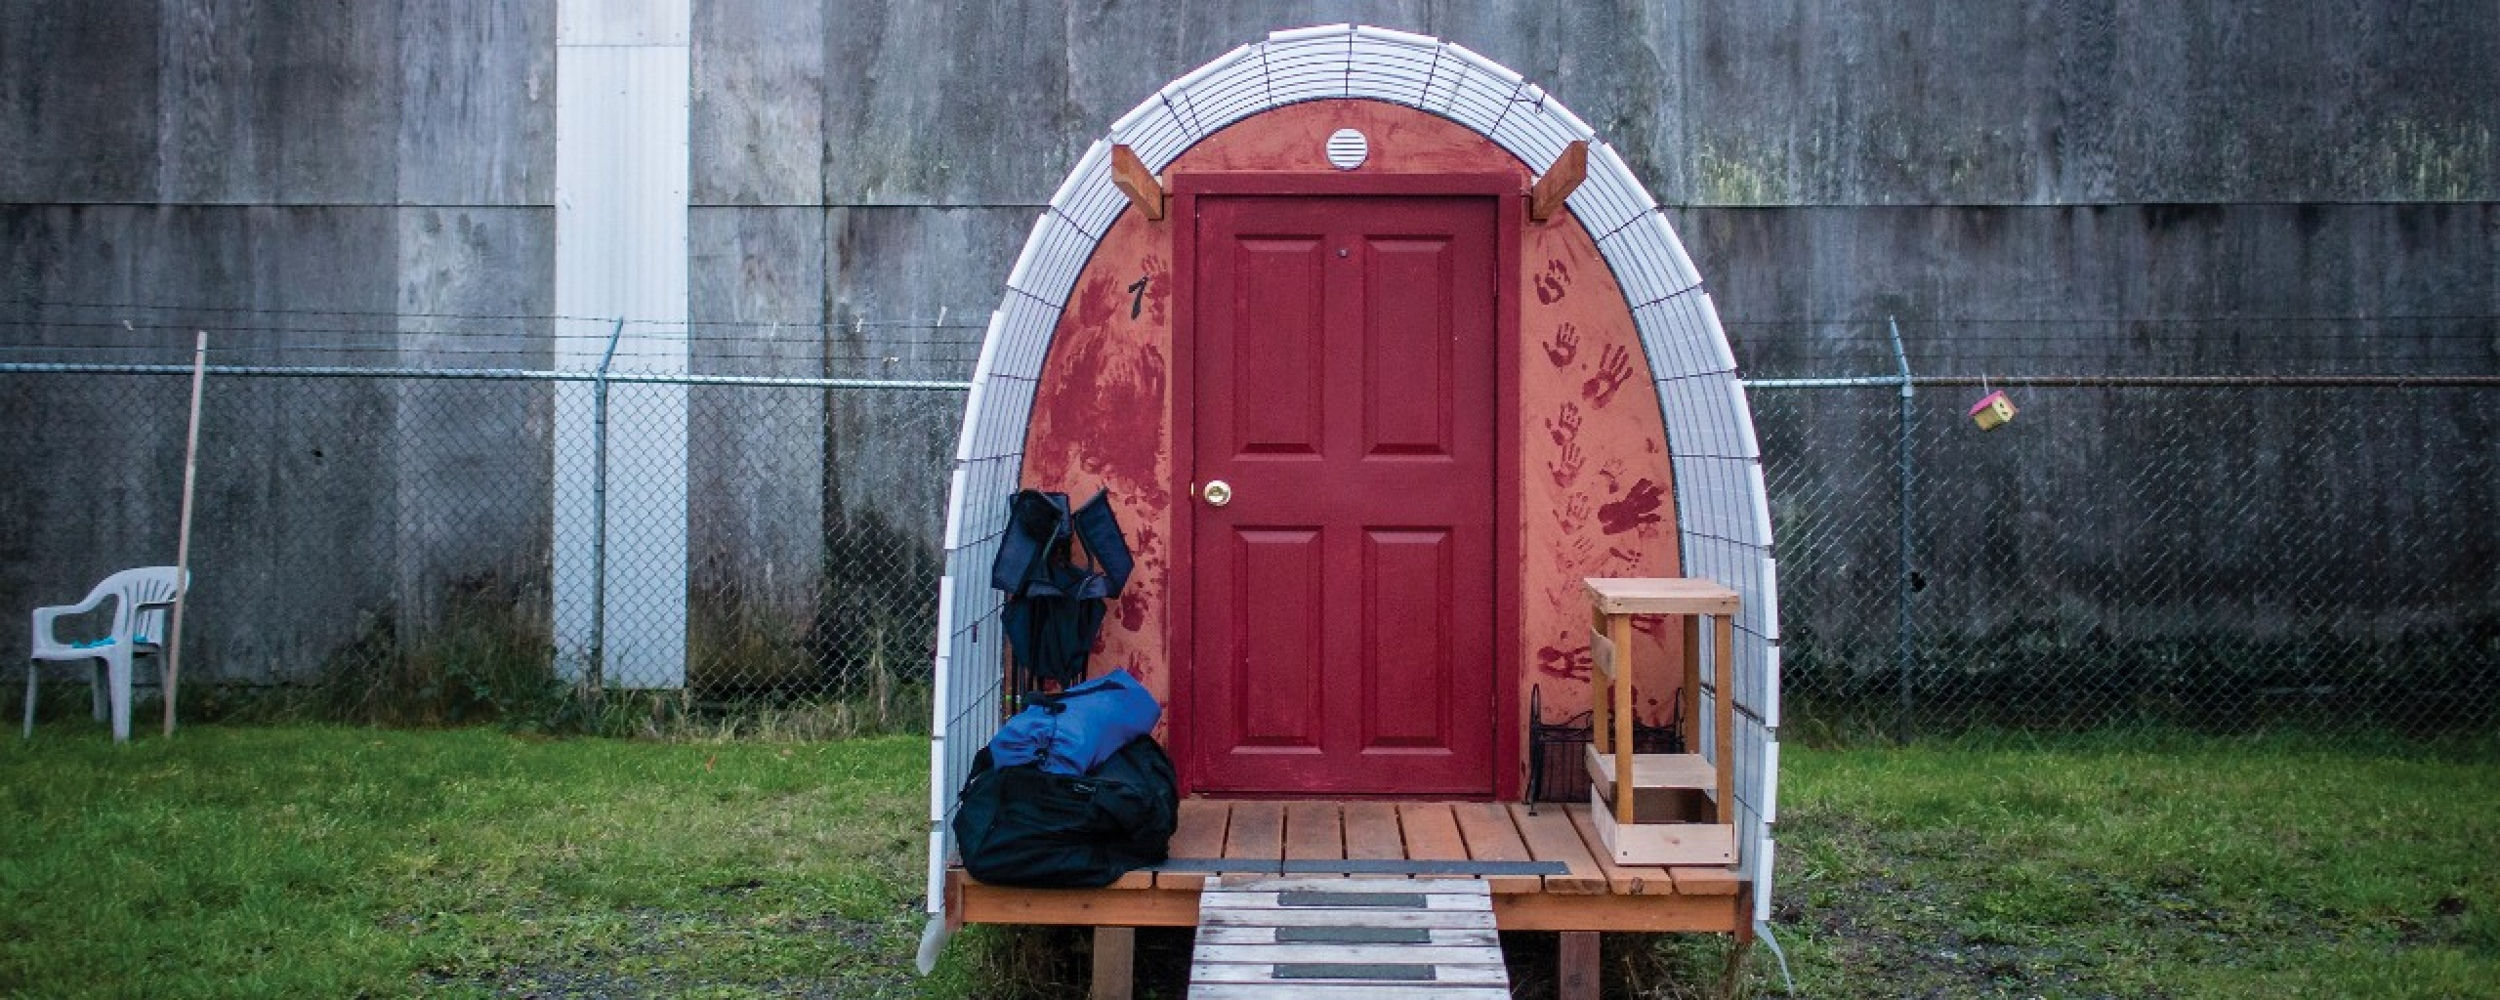 The front door of a tiny house in Opportunity Village in Eugene, Oregon.